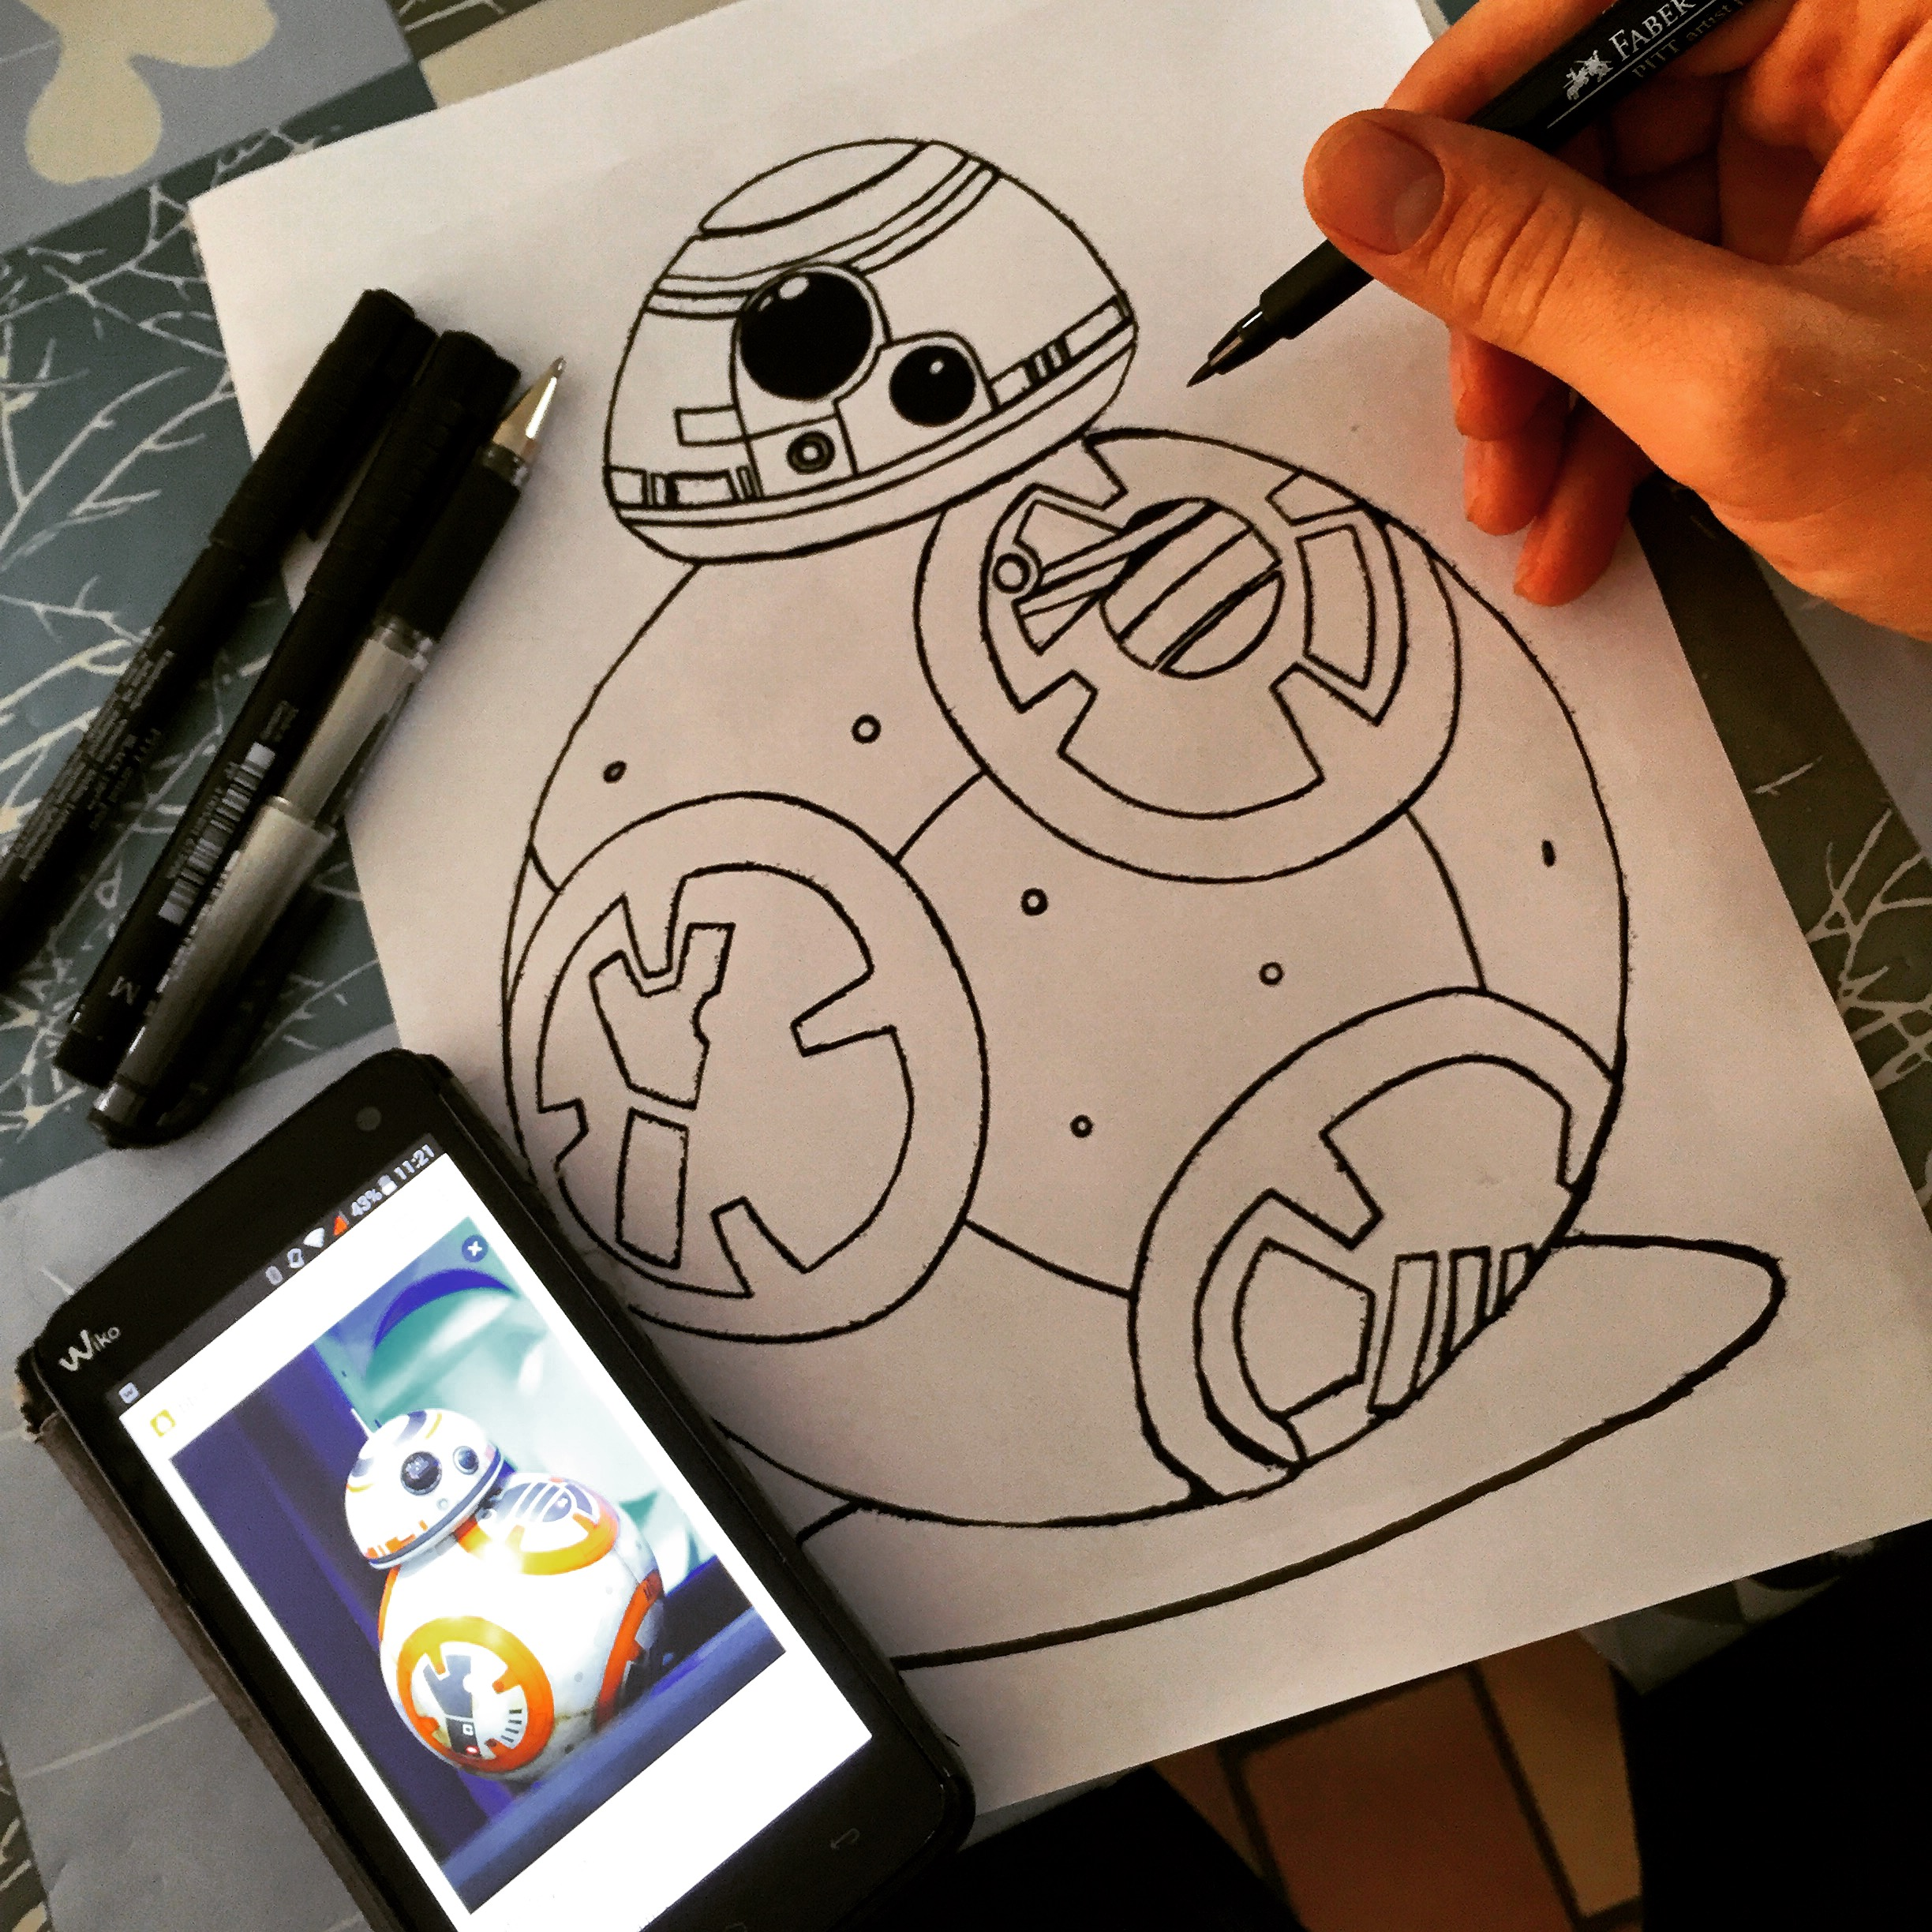 Bb 8 coloring pages - So It Is Not An Official Disney Lucasfilm Coloring But An Original Work So Not Necessarily Perfect Thank You For Your Indulgence